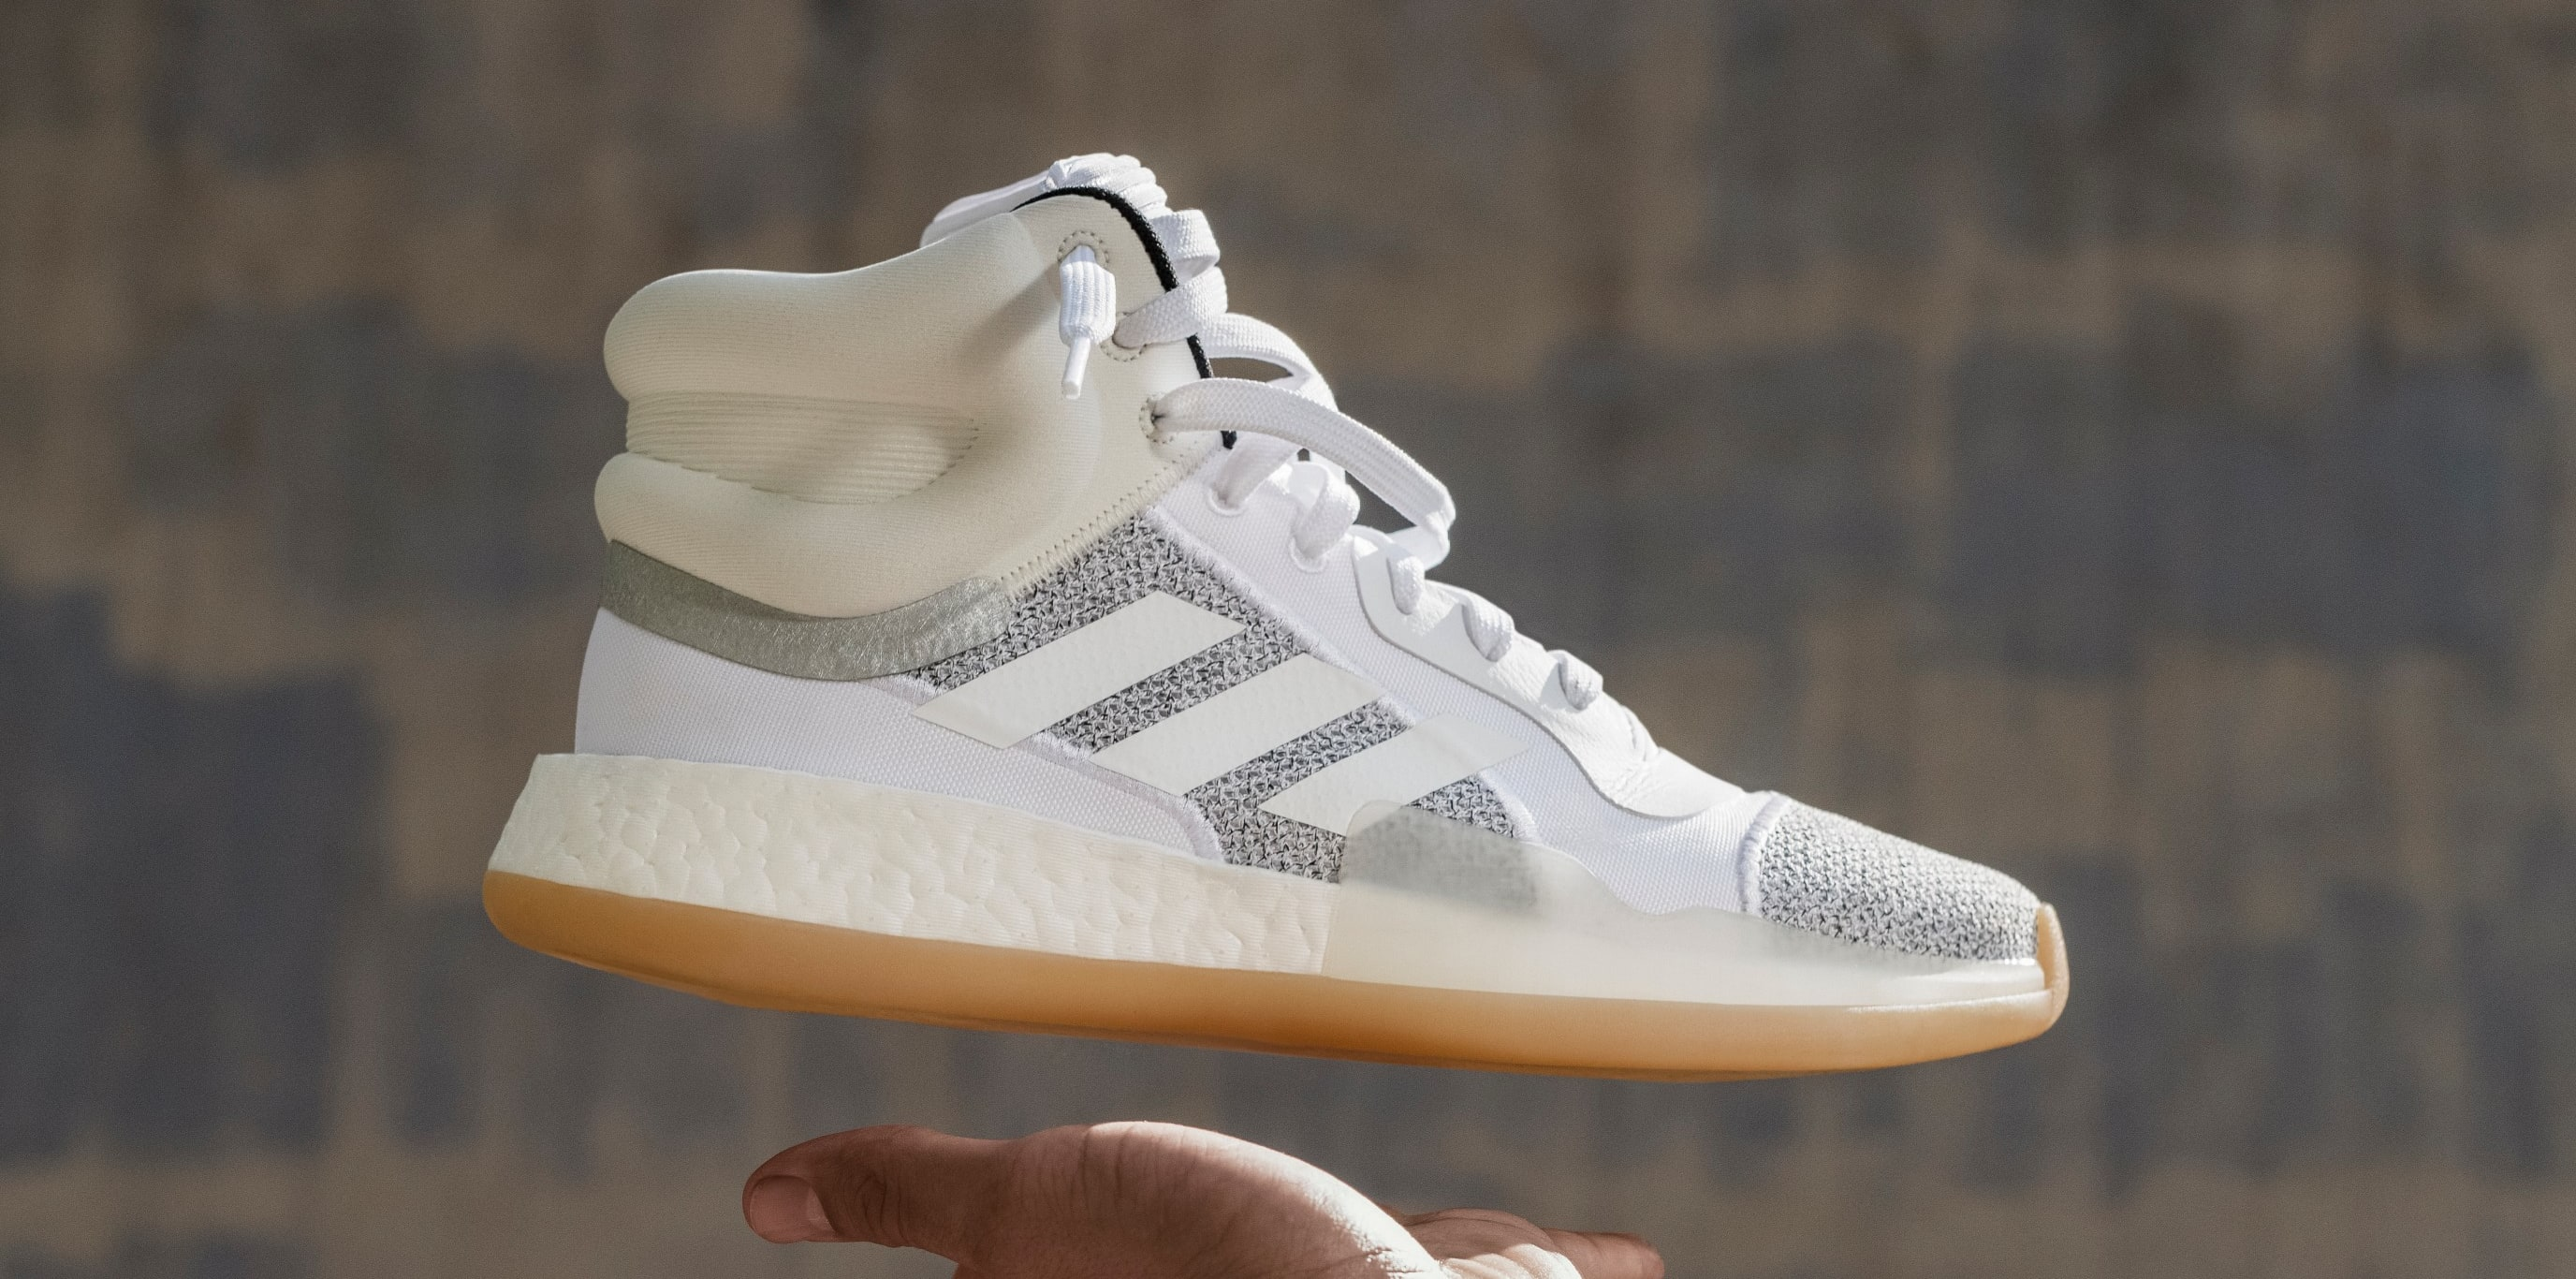 adidas Marquee Boost Release Date + Store Links